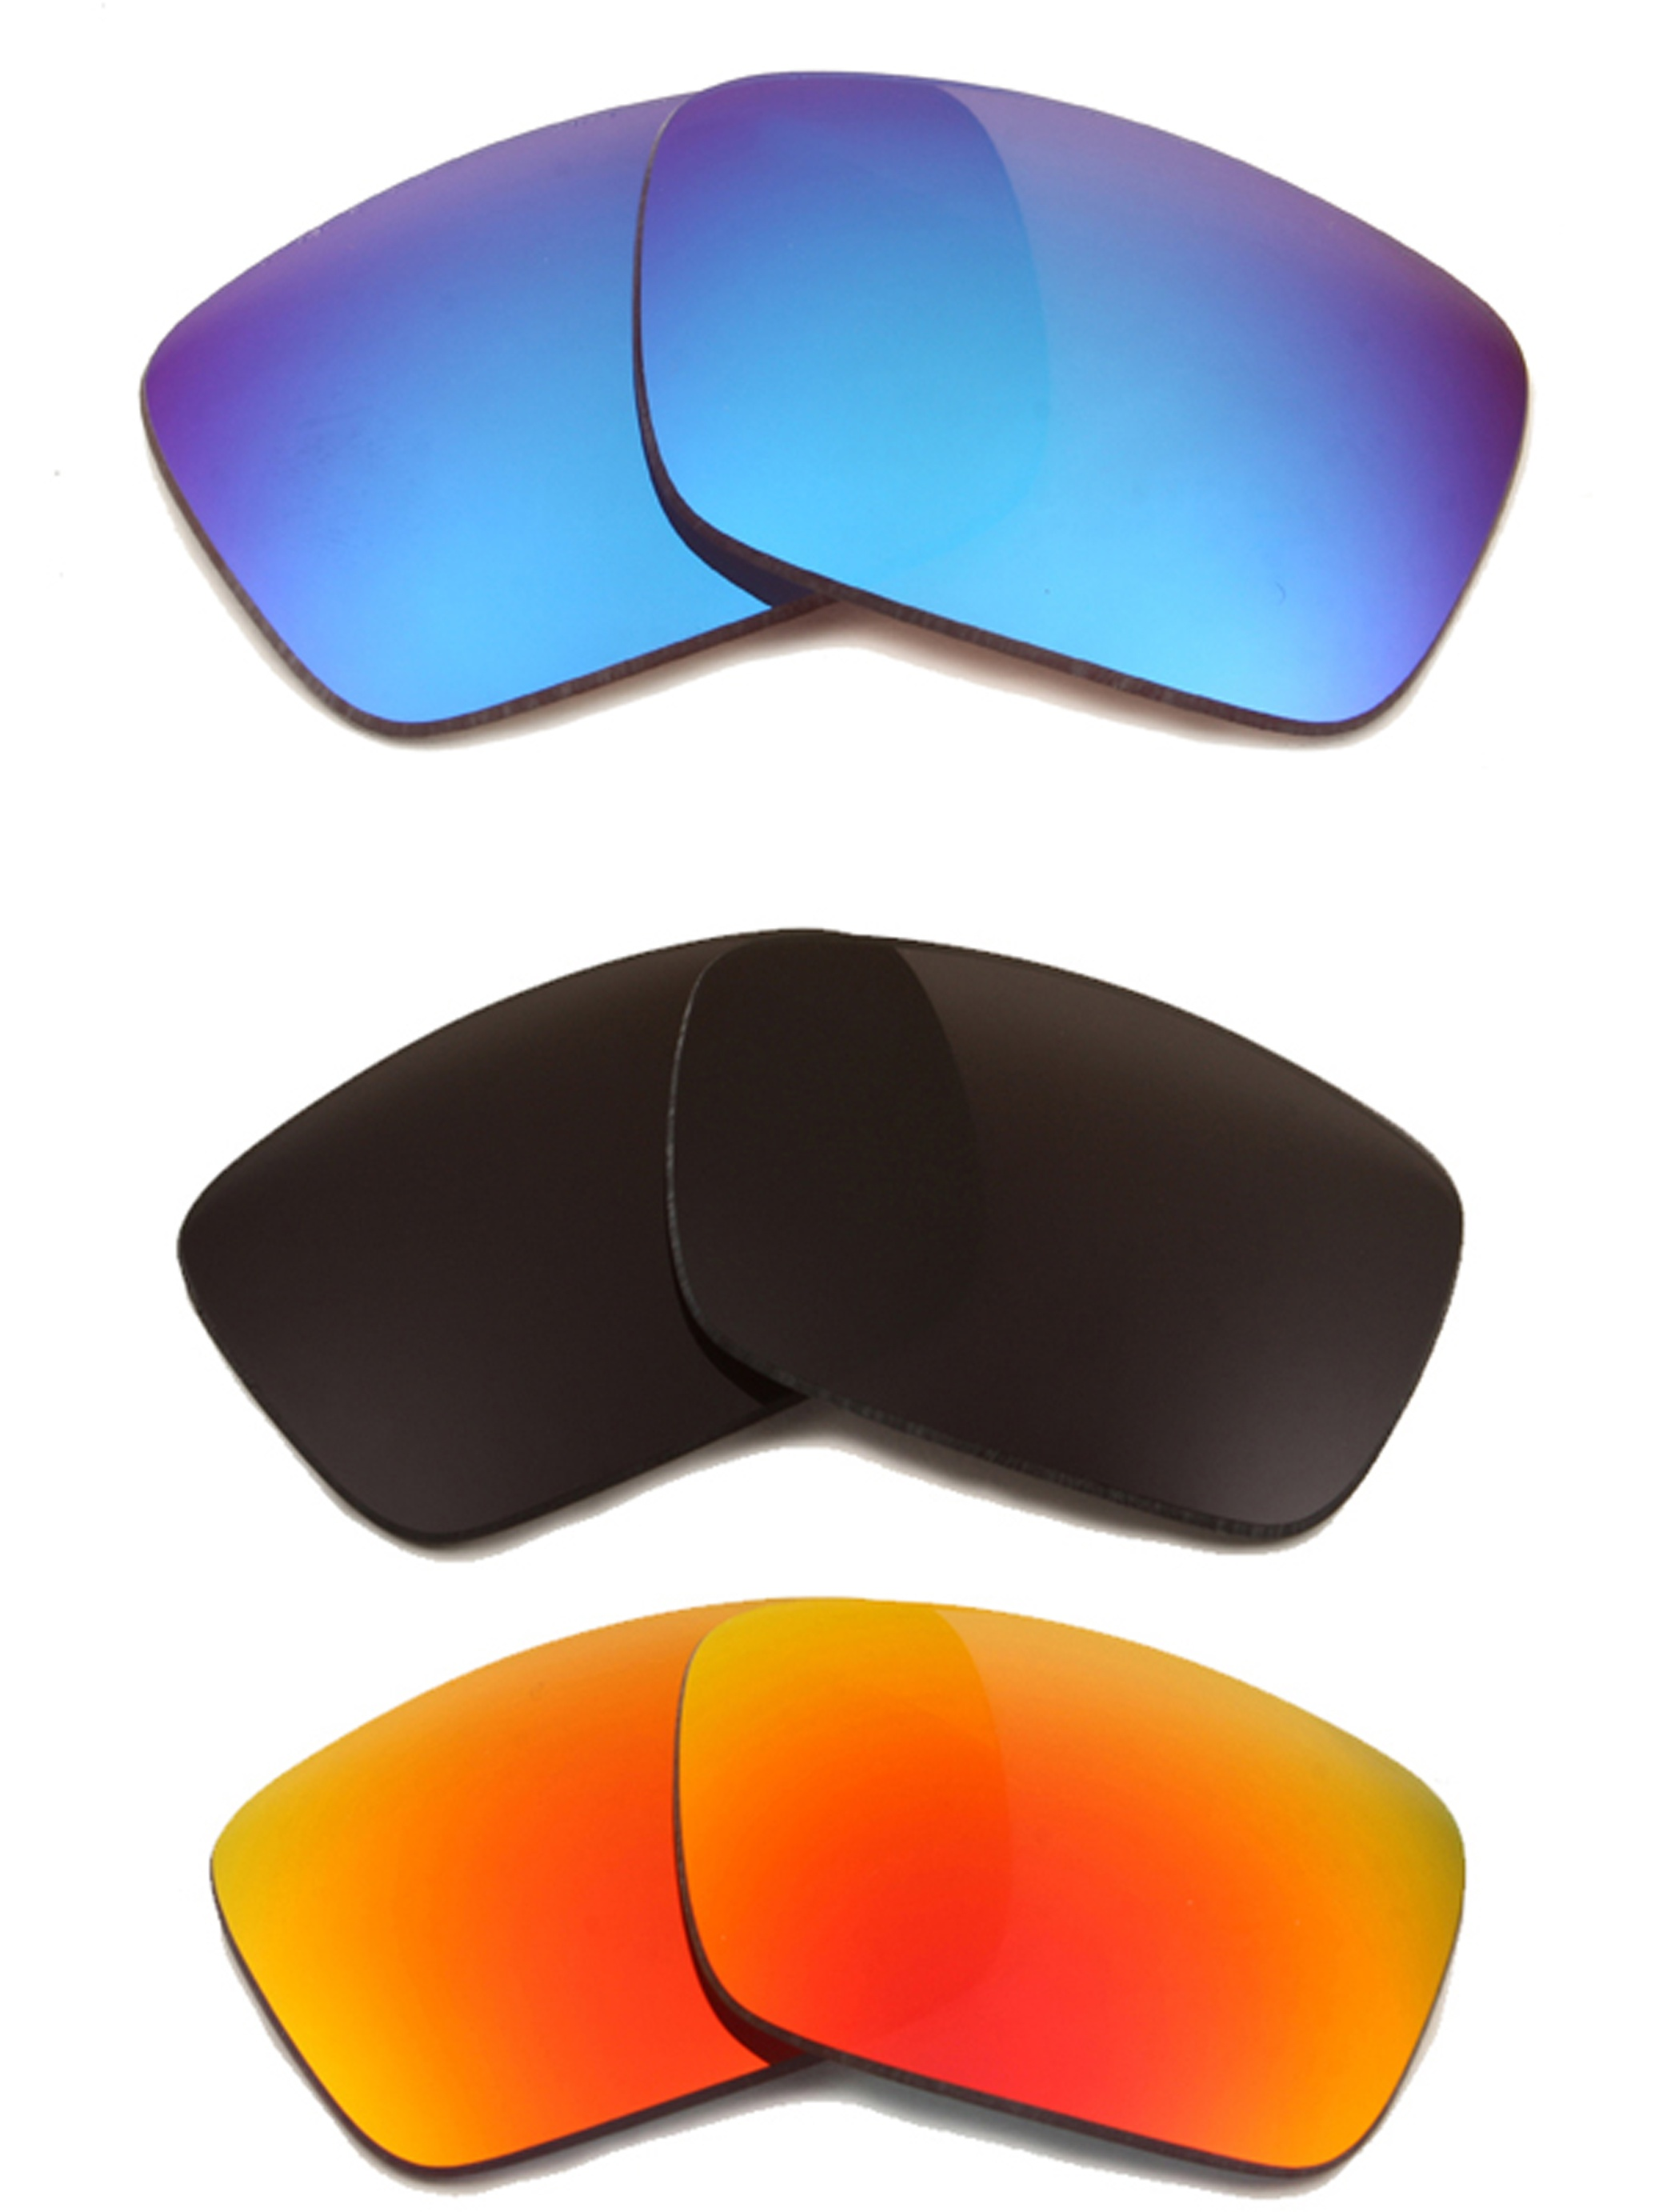 FUEL CELL Replacement Lenses Grey Blue & Red by SEEK fits OAKLEY Sunglasses